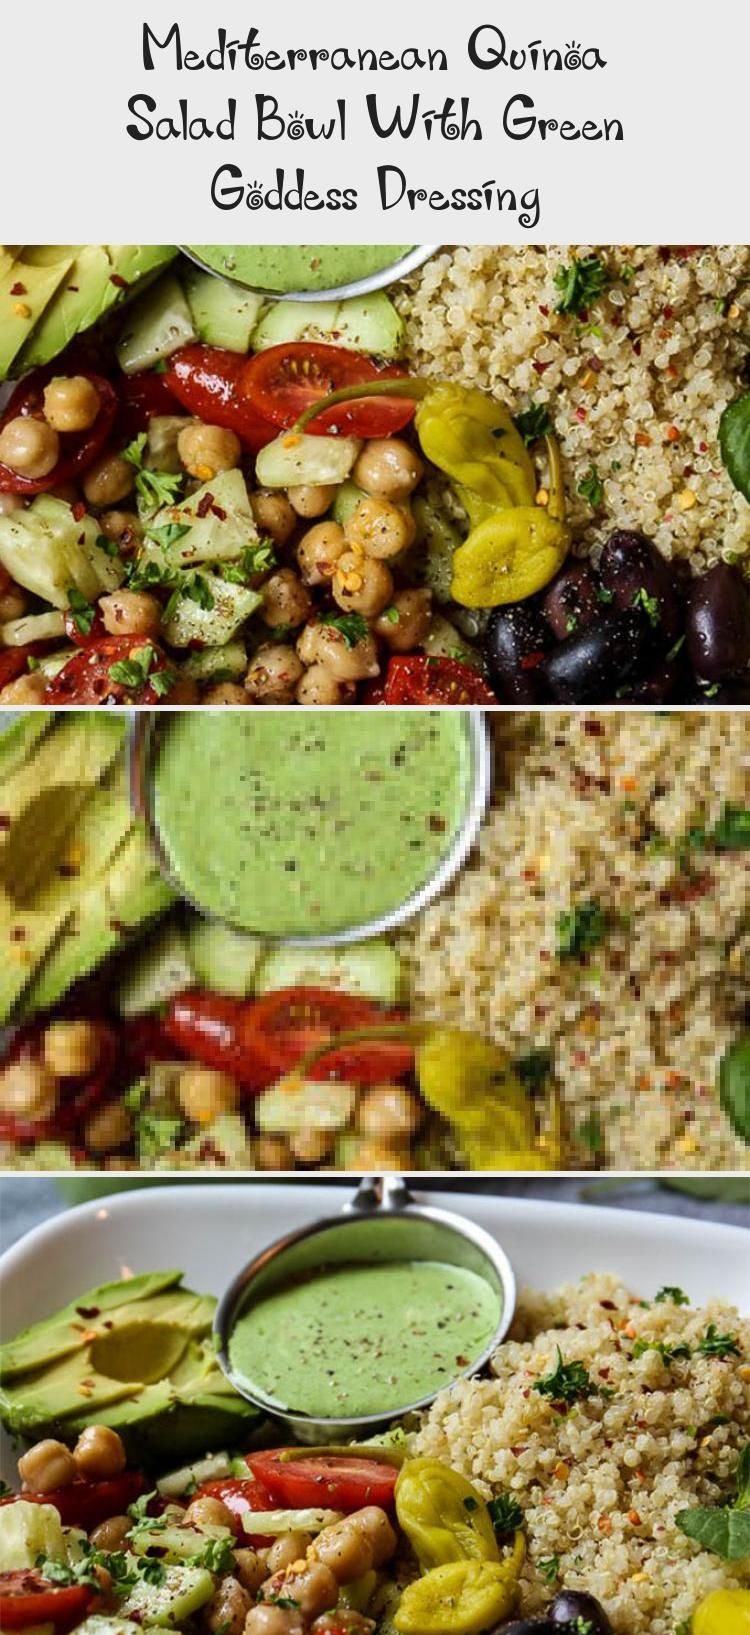 This Mediterranean Quinoa Salad Bowl With Green Goddess Dressing Comes Together In 15 Minutes And Has A Flavorful Colorful Combination Of Healthy Ingredients [ 1635 x 750 Pixel ]